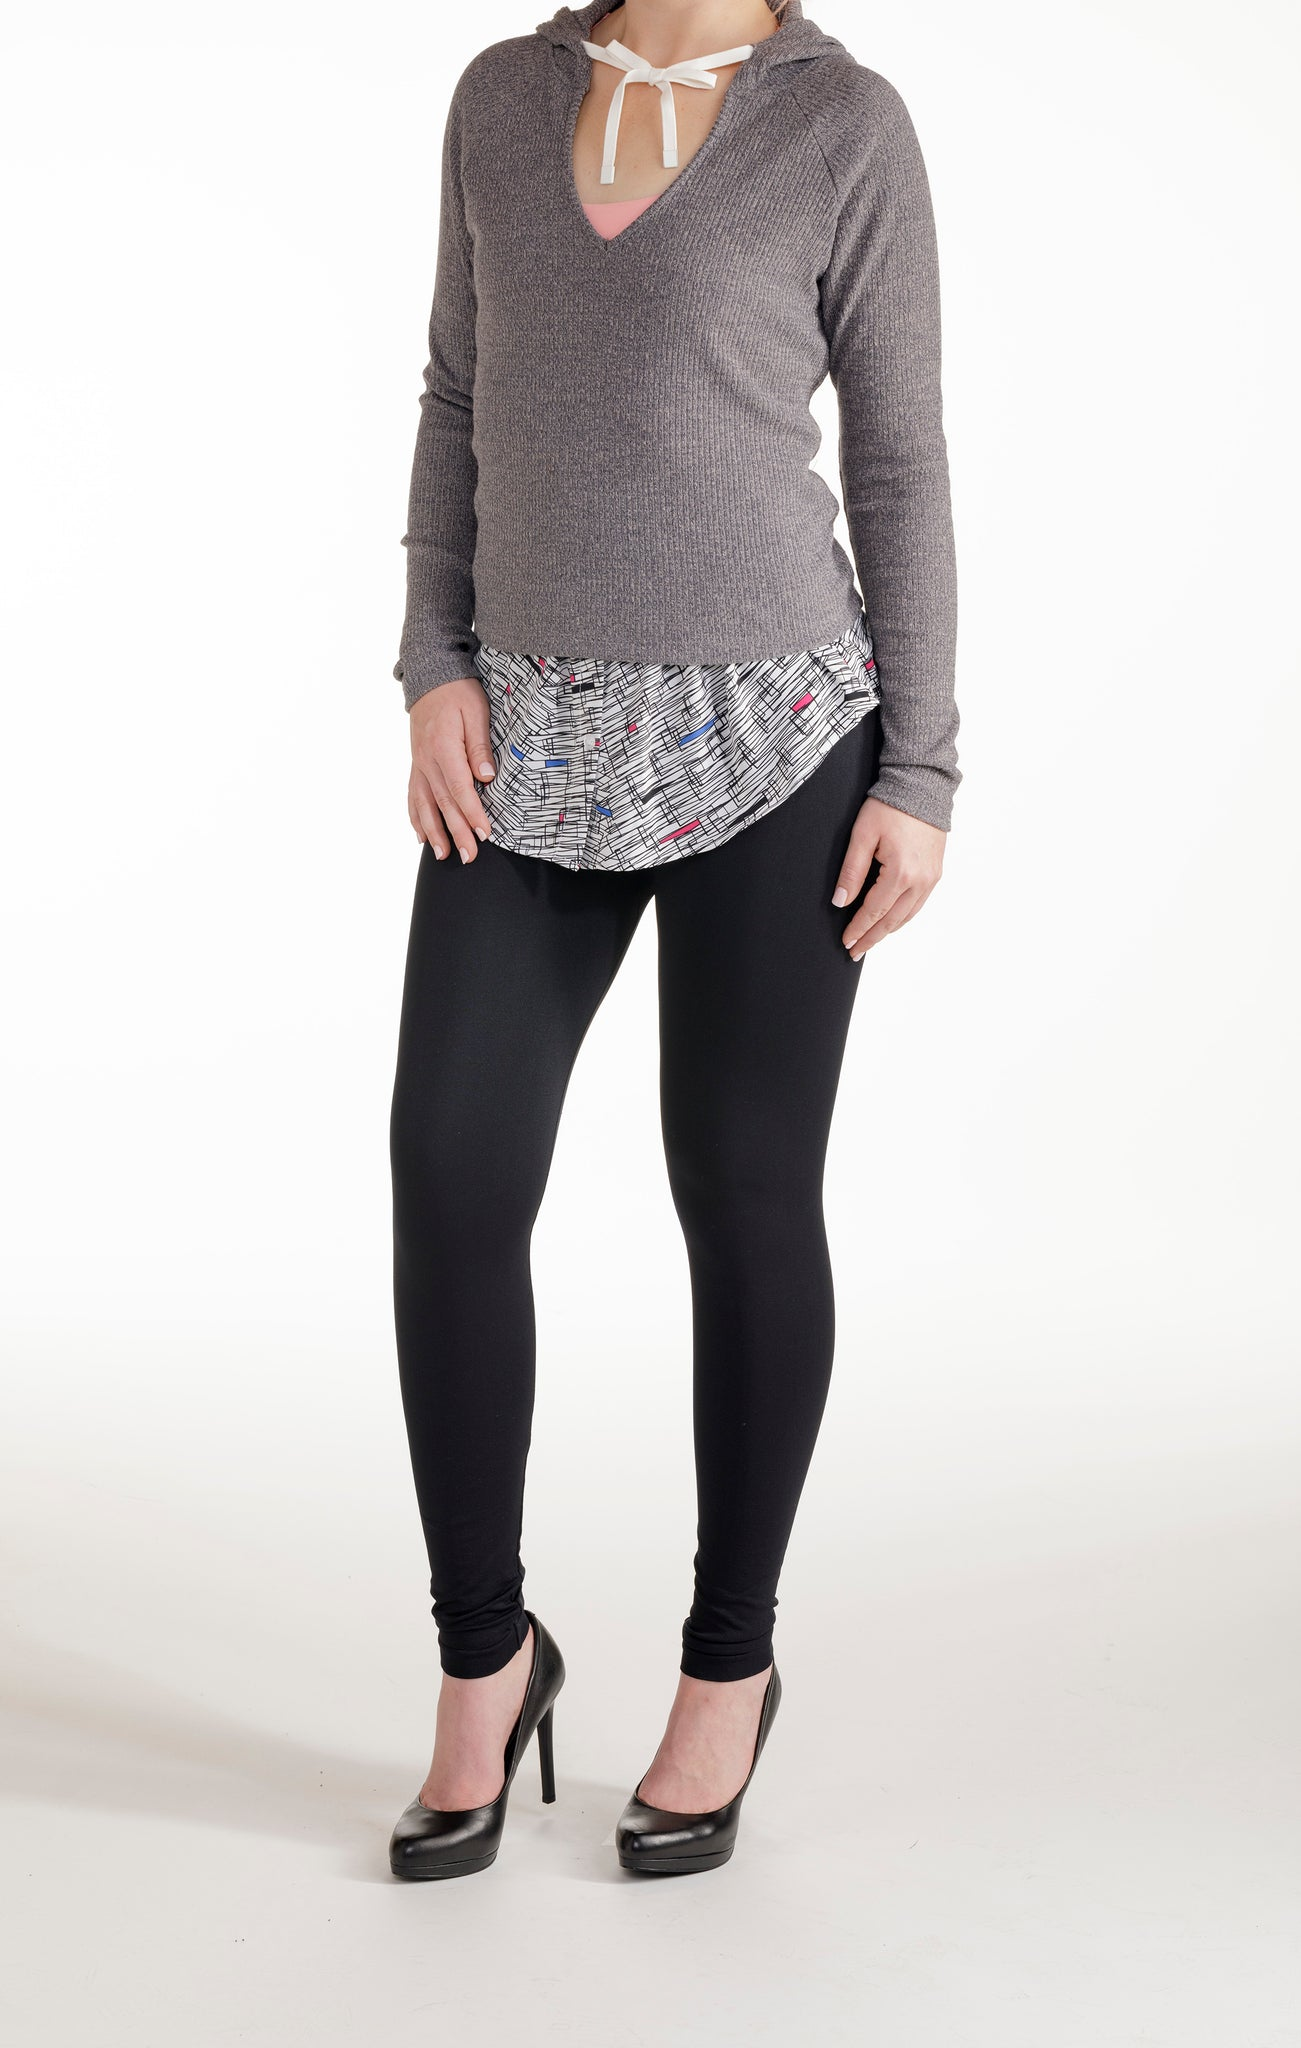 Edgy Lines legging accessory and layering top. Get that layered look without the bulk with SkimMe – The Peekaboo Shirttail. It's the perfect match under your tees, tops, sweaters and jackets. Wear it over your favorite leggings and skinny jeans.